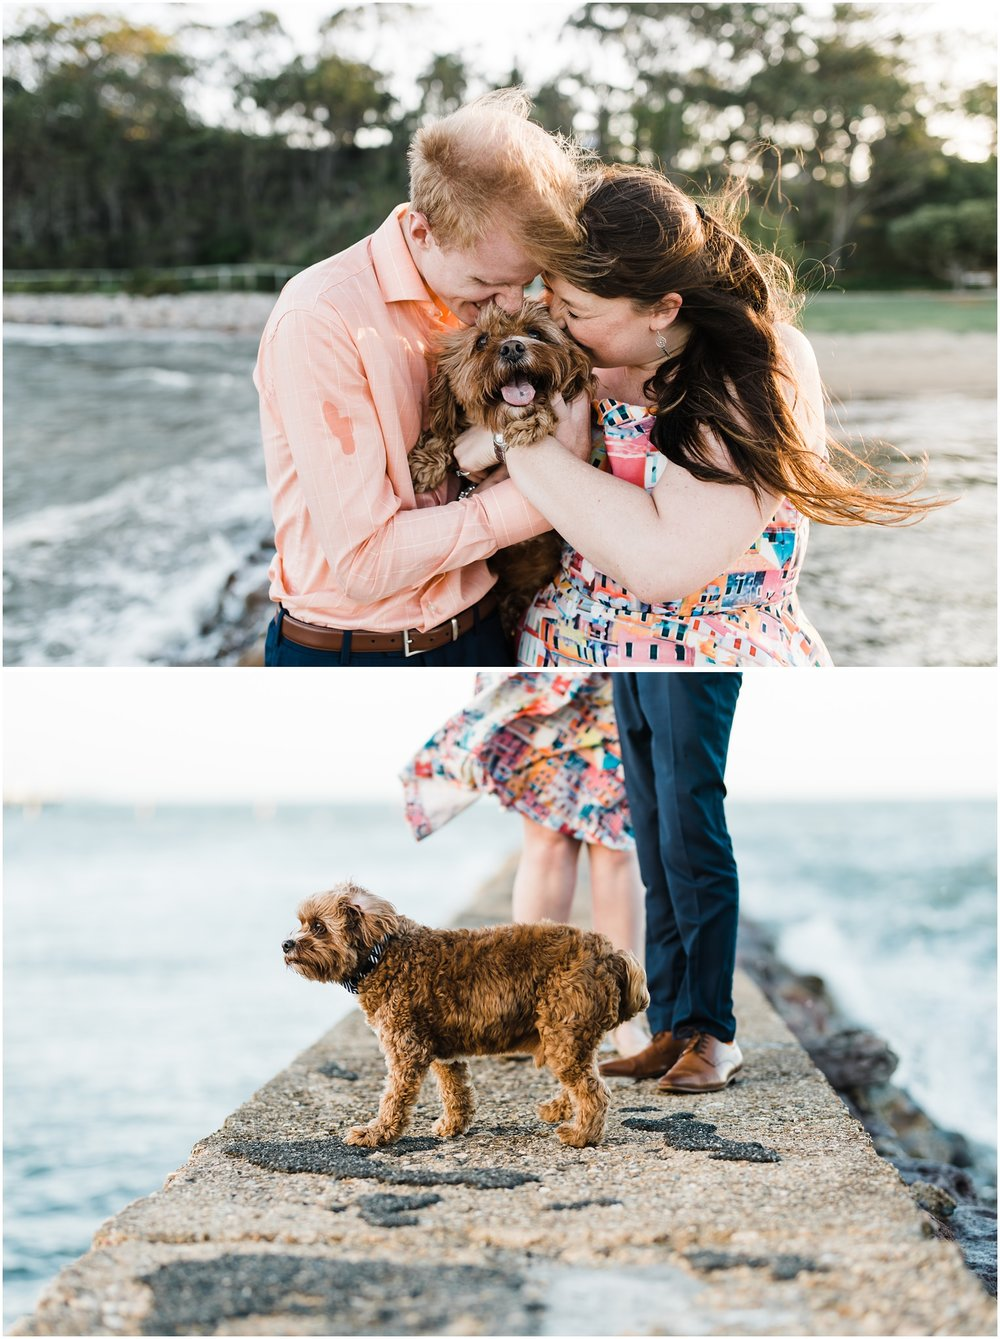 brisbane-brighton-sandgate-engagement-pet-photography-cute-doggo29.jpg